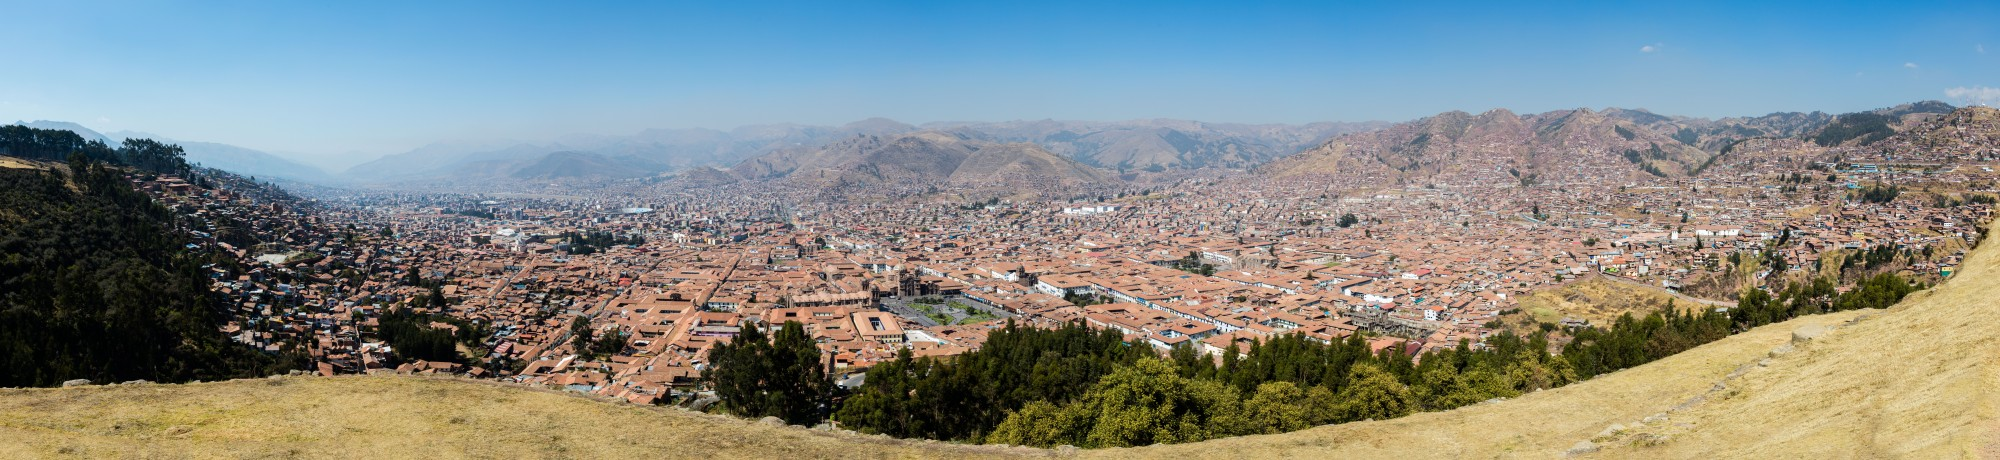 Vista de Cusco, Perú, 2015-07-31, DD 06-10 PAN